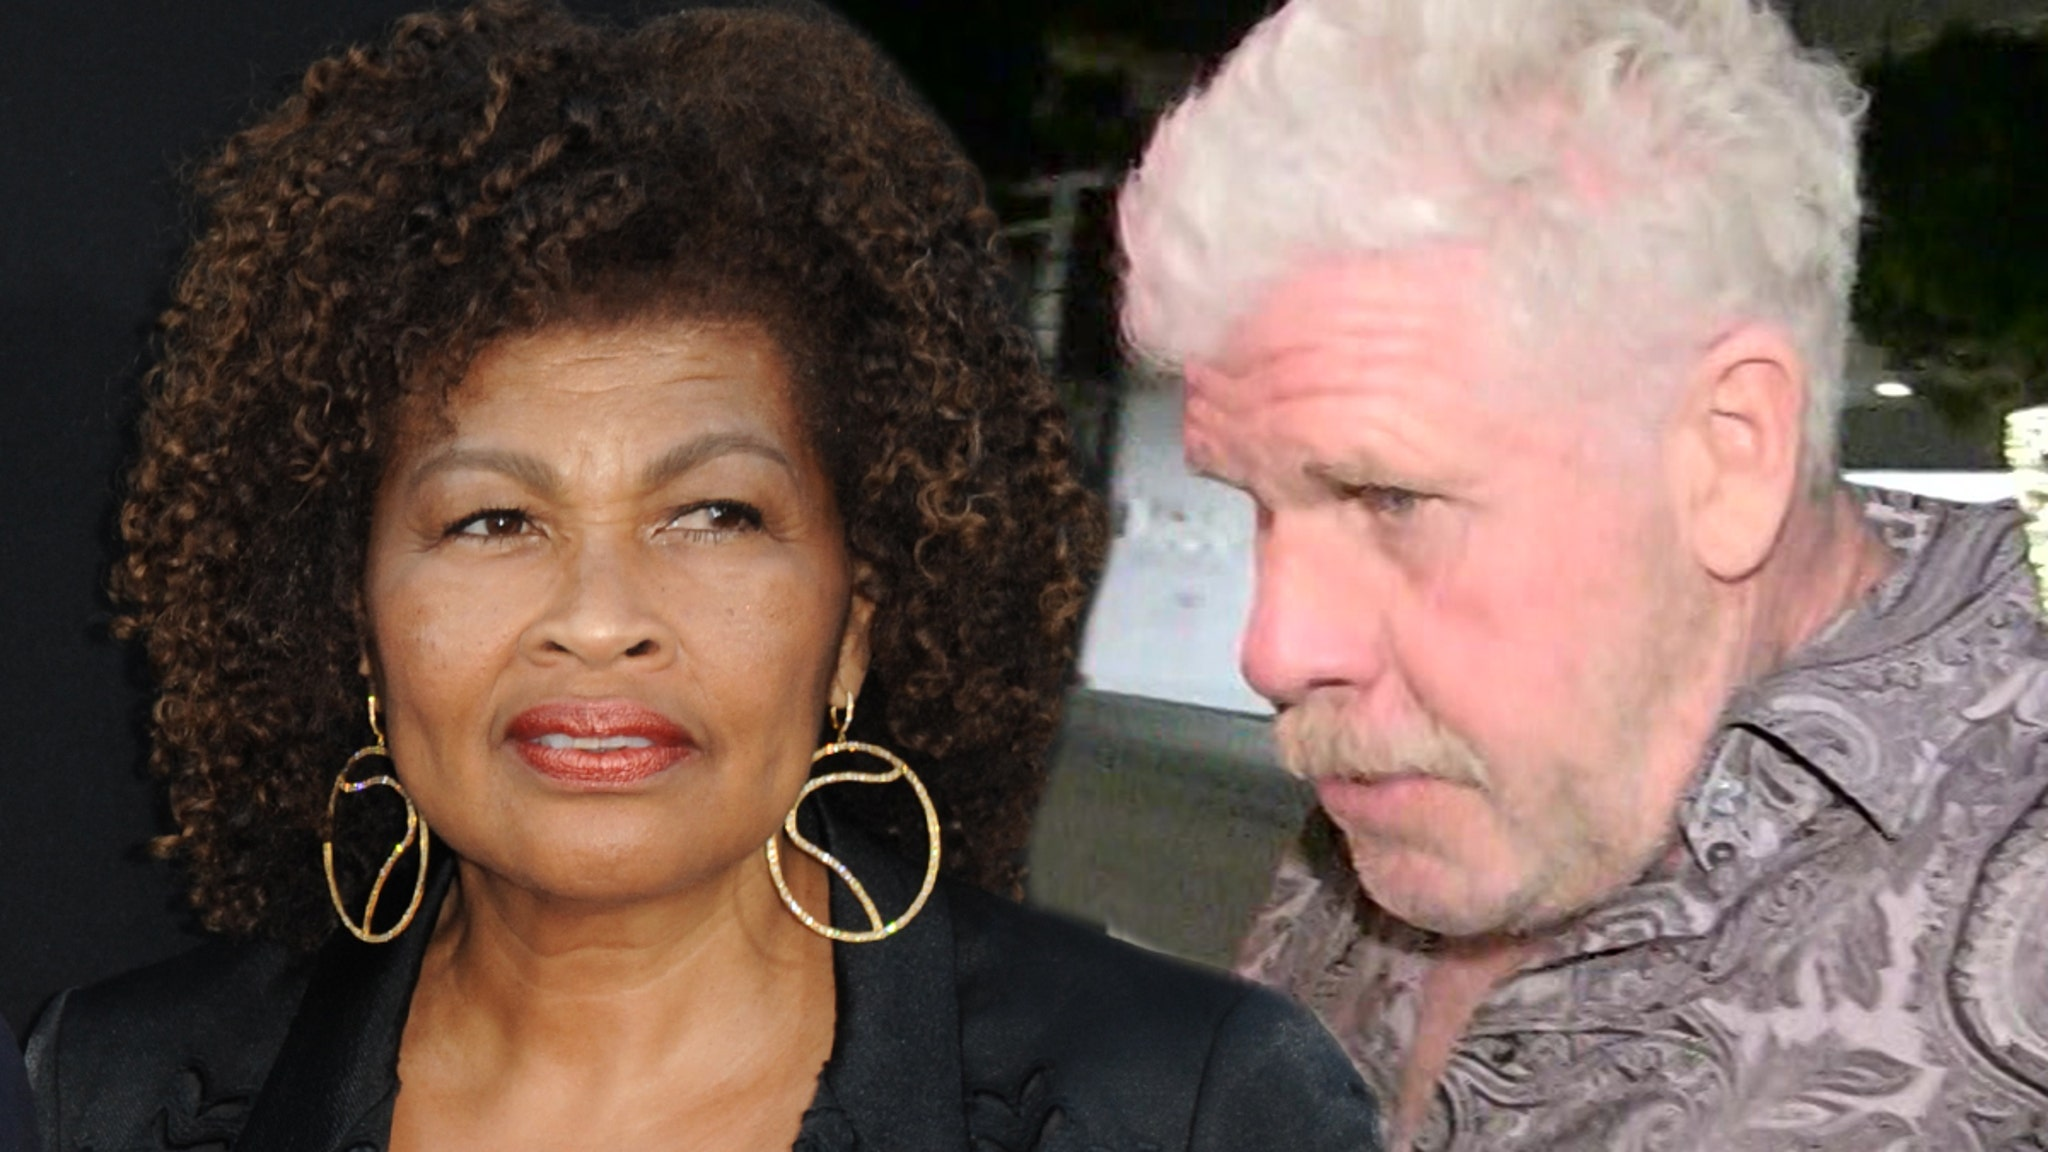 Ron Perlman Divorce Ex Says She Needs Psychologist ... Seeks Spousal Support